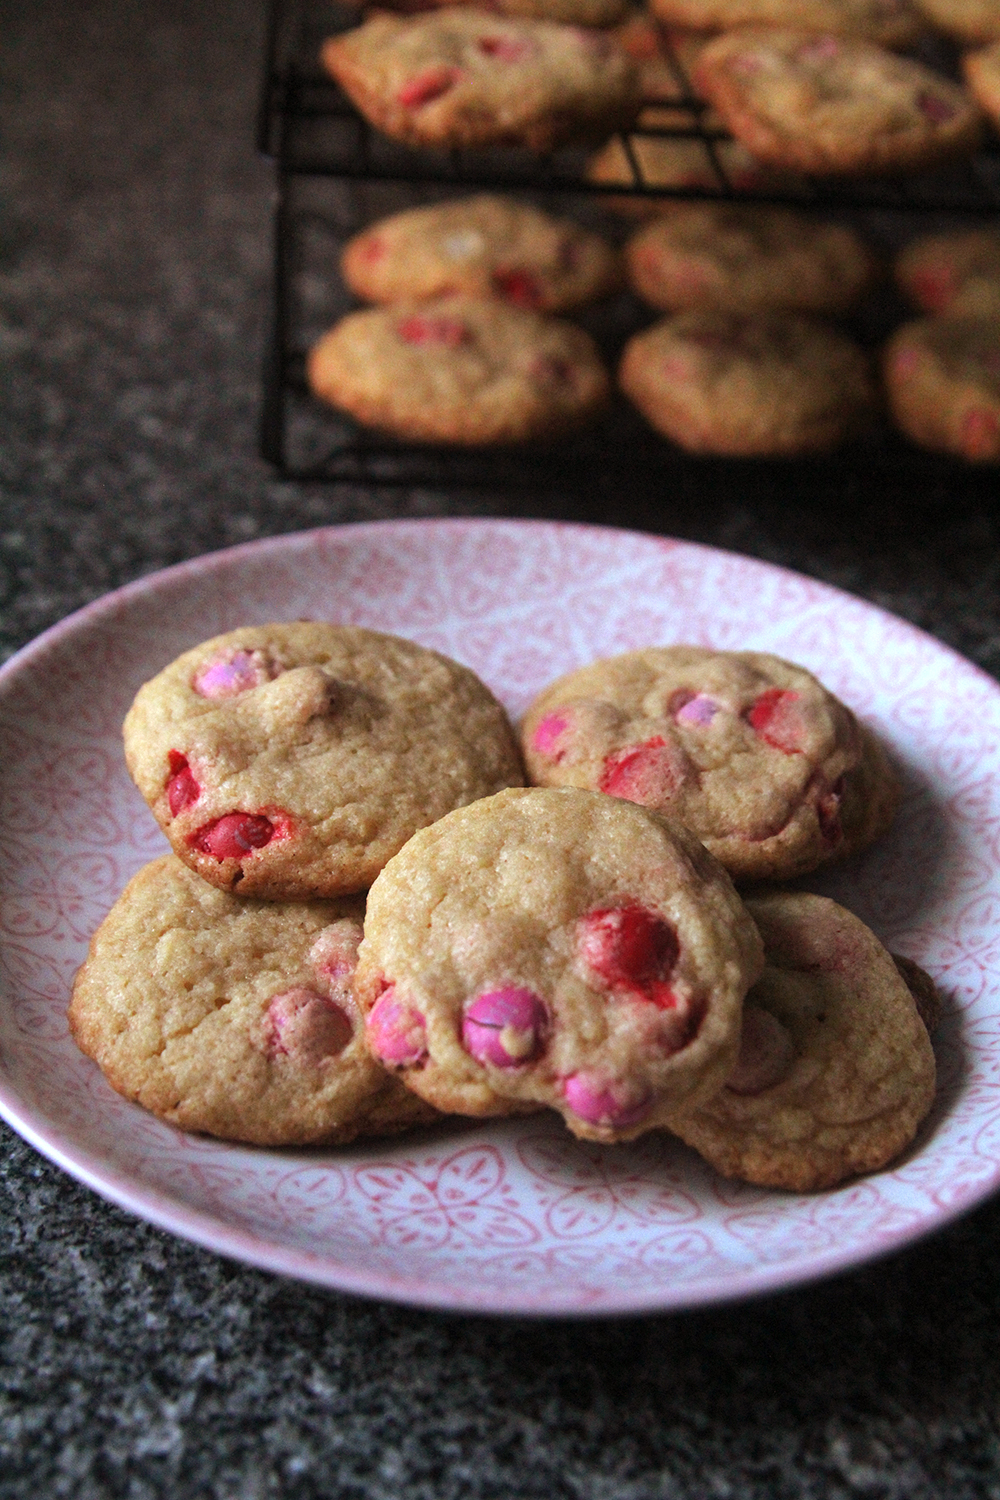 A pink and white plate on a granite countertop shows a pile of M&M cookies for Valentine's Day dotted with red and pink candies. A cooling rack with cookies sits in the background.